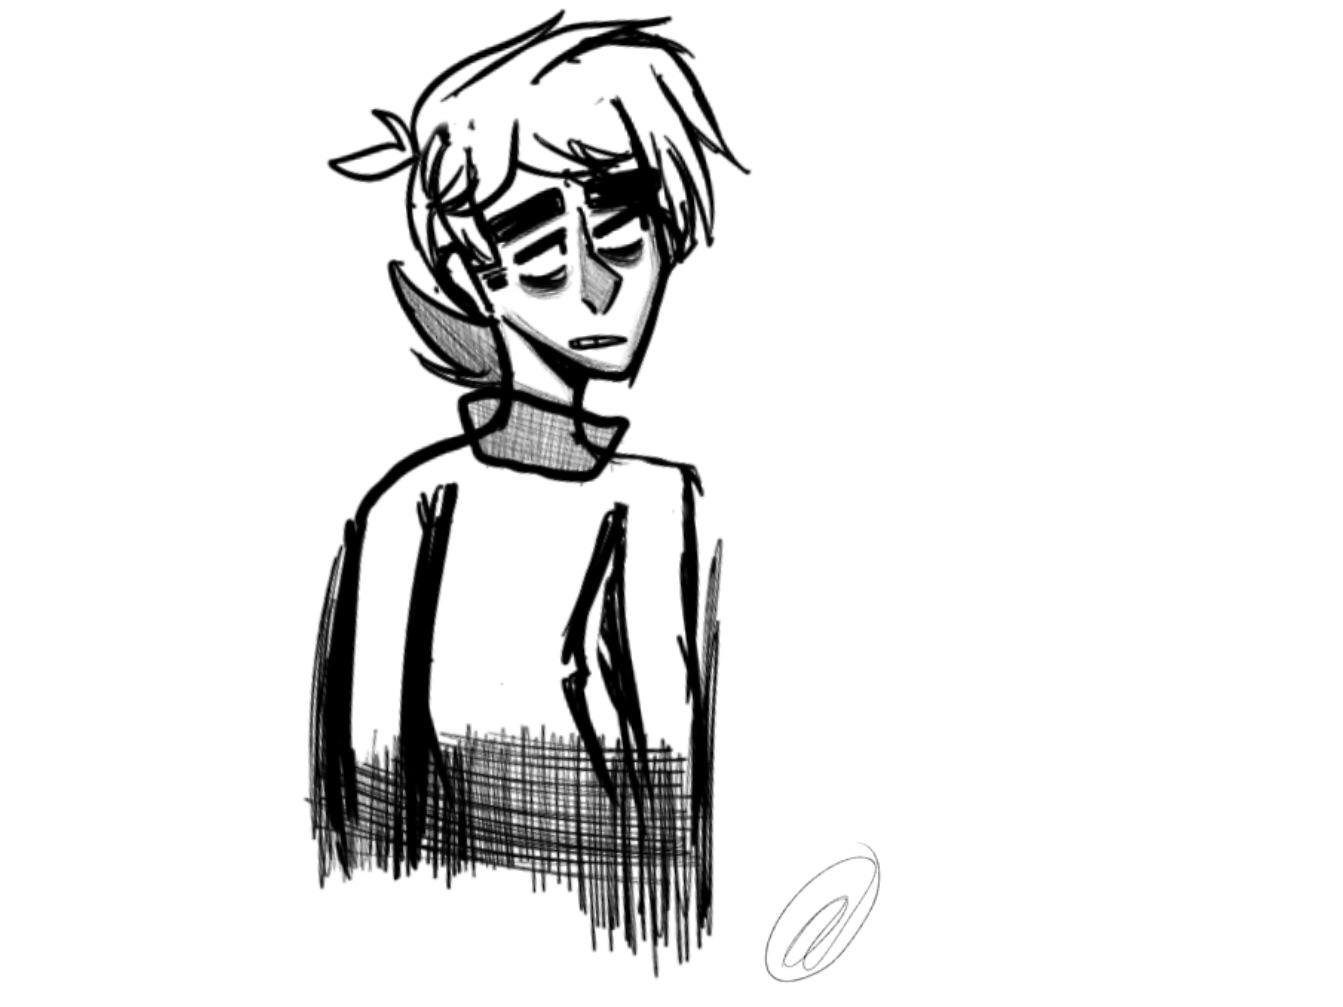 Paul with his sweater on : Eddsworld